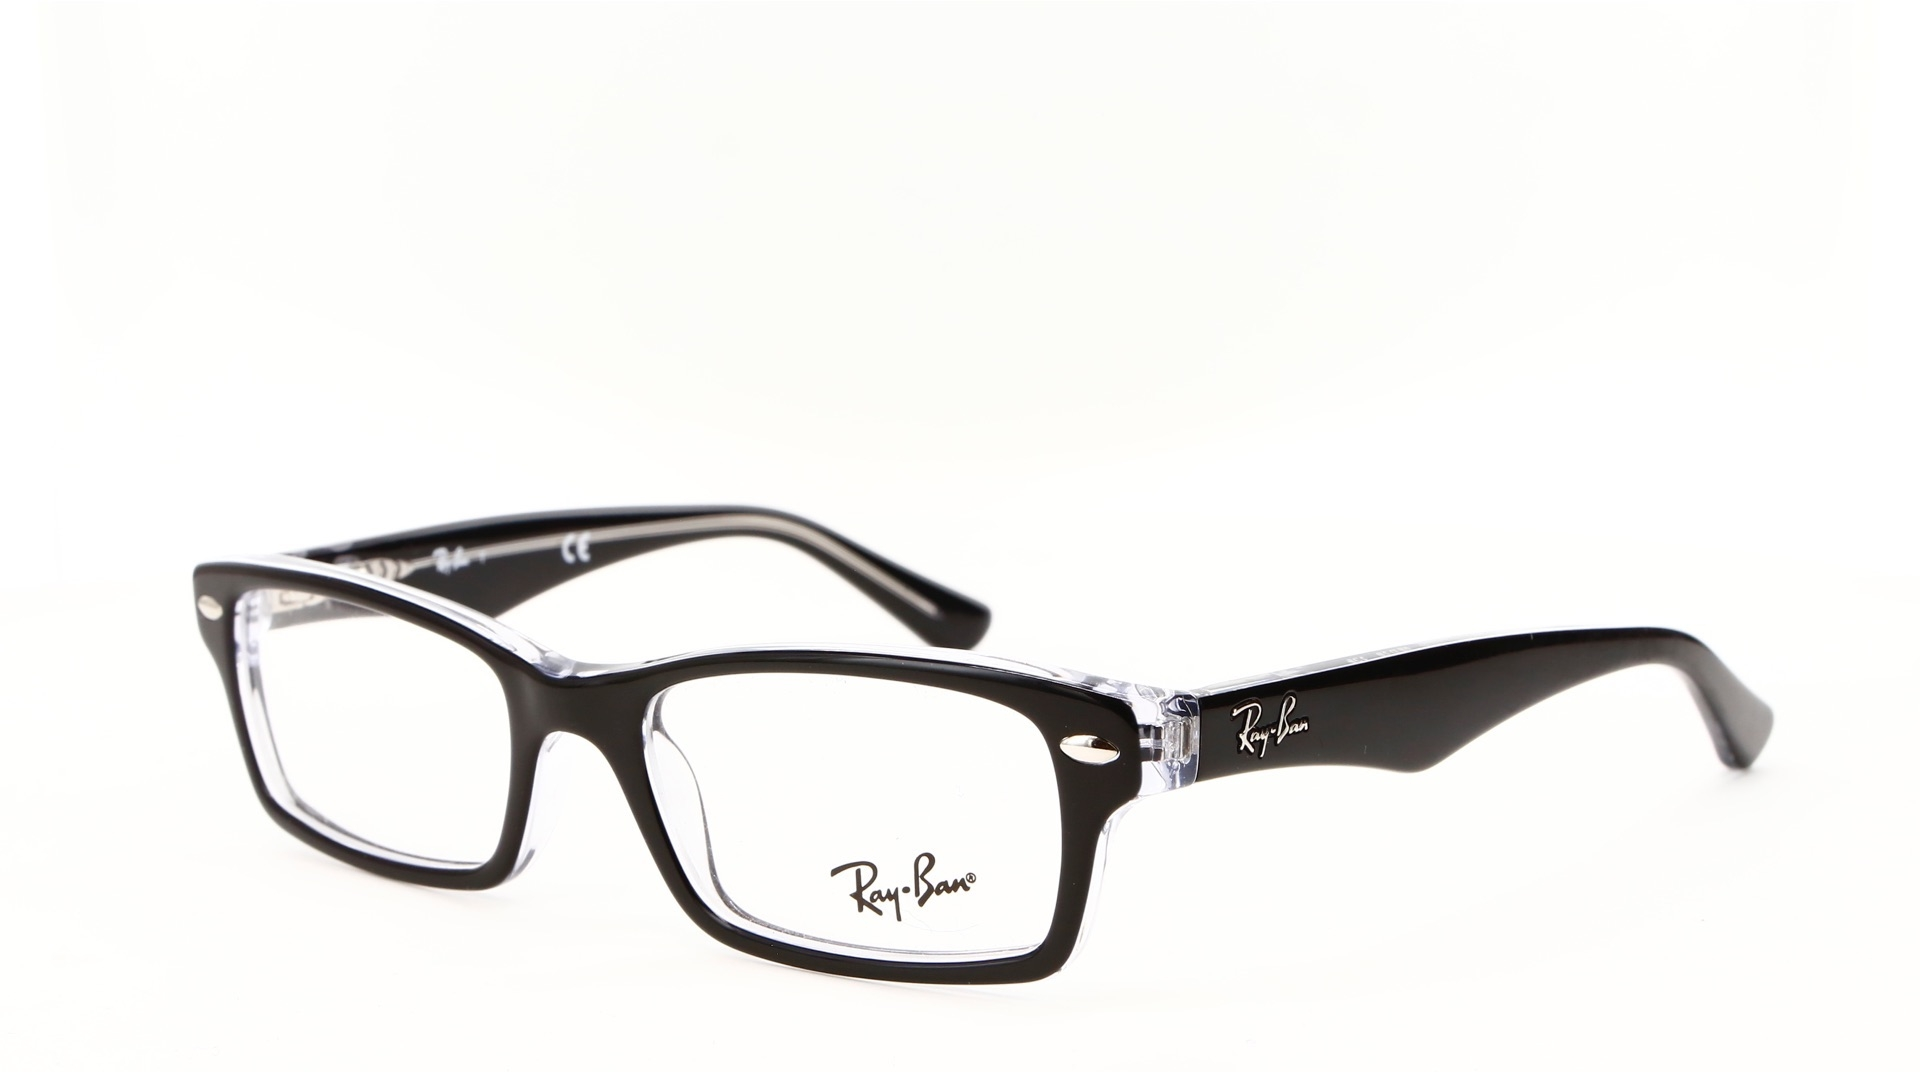 Ray-Ban - ref: 67149